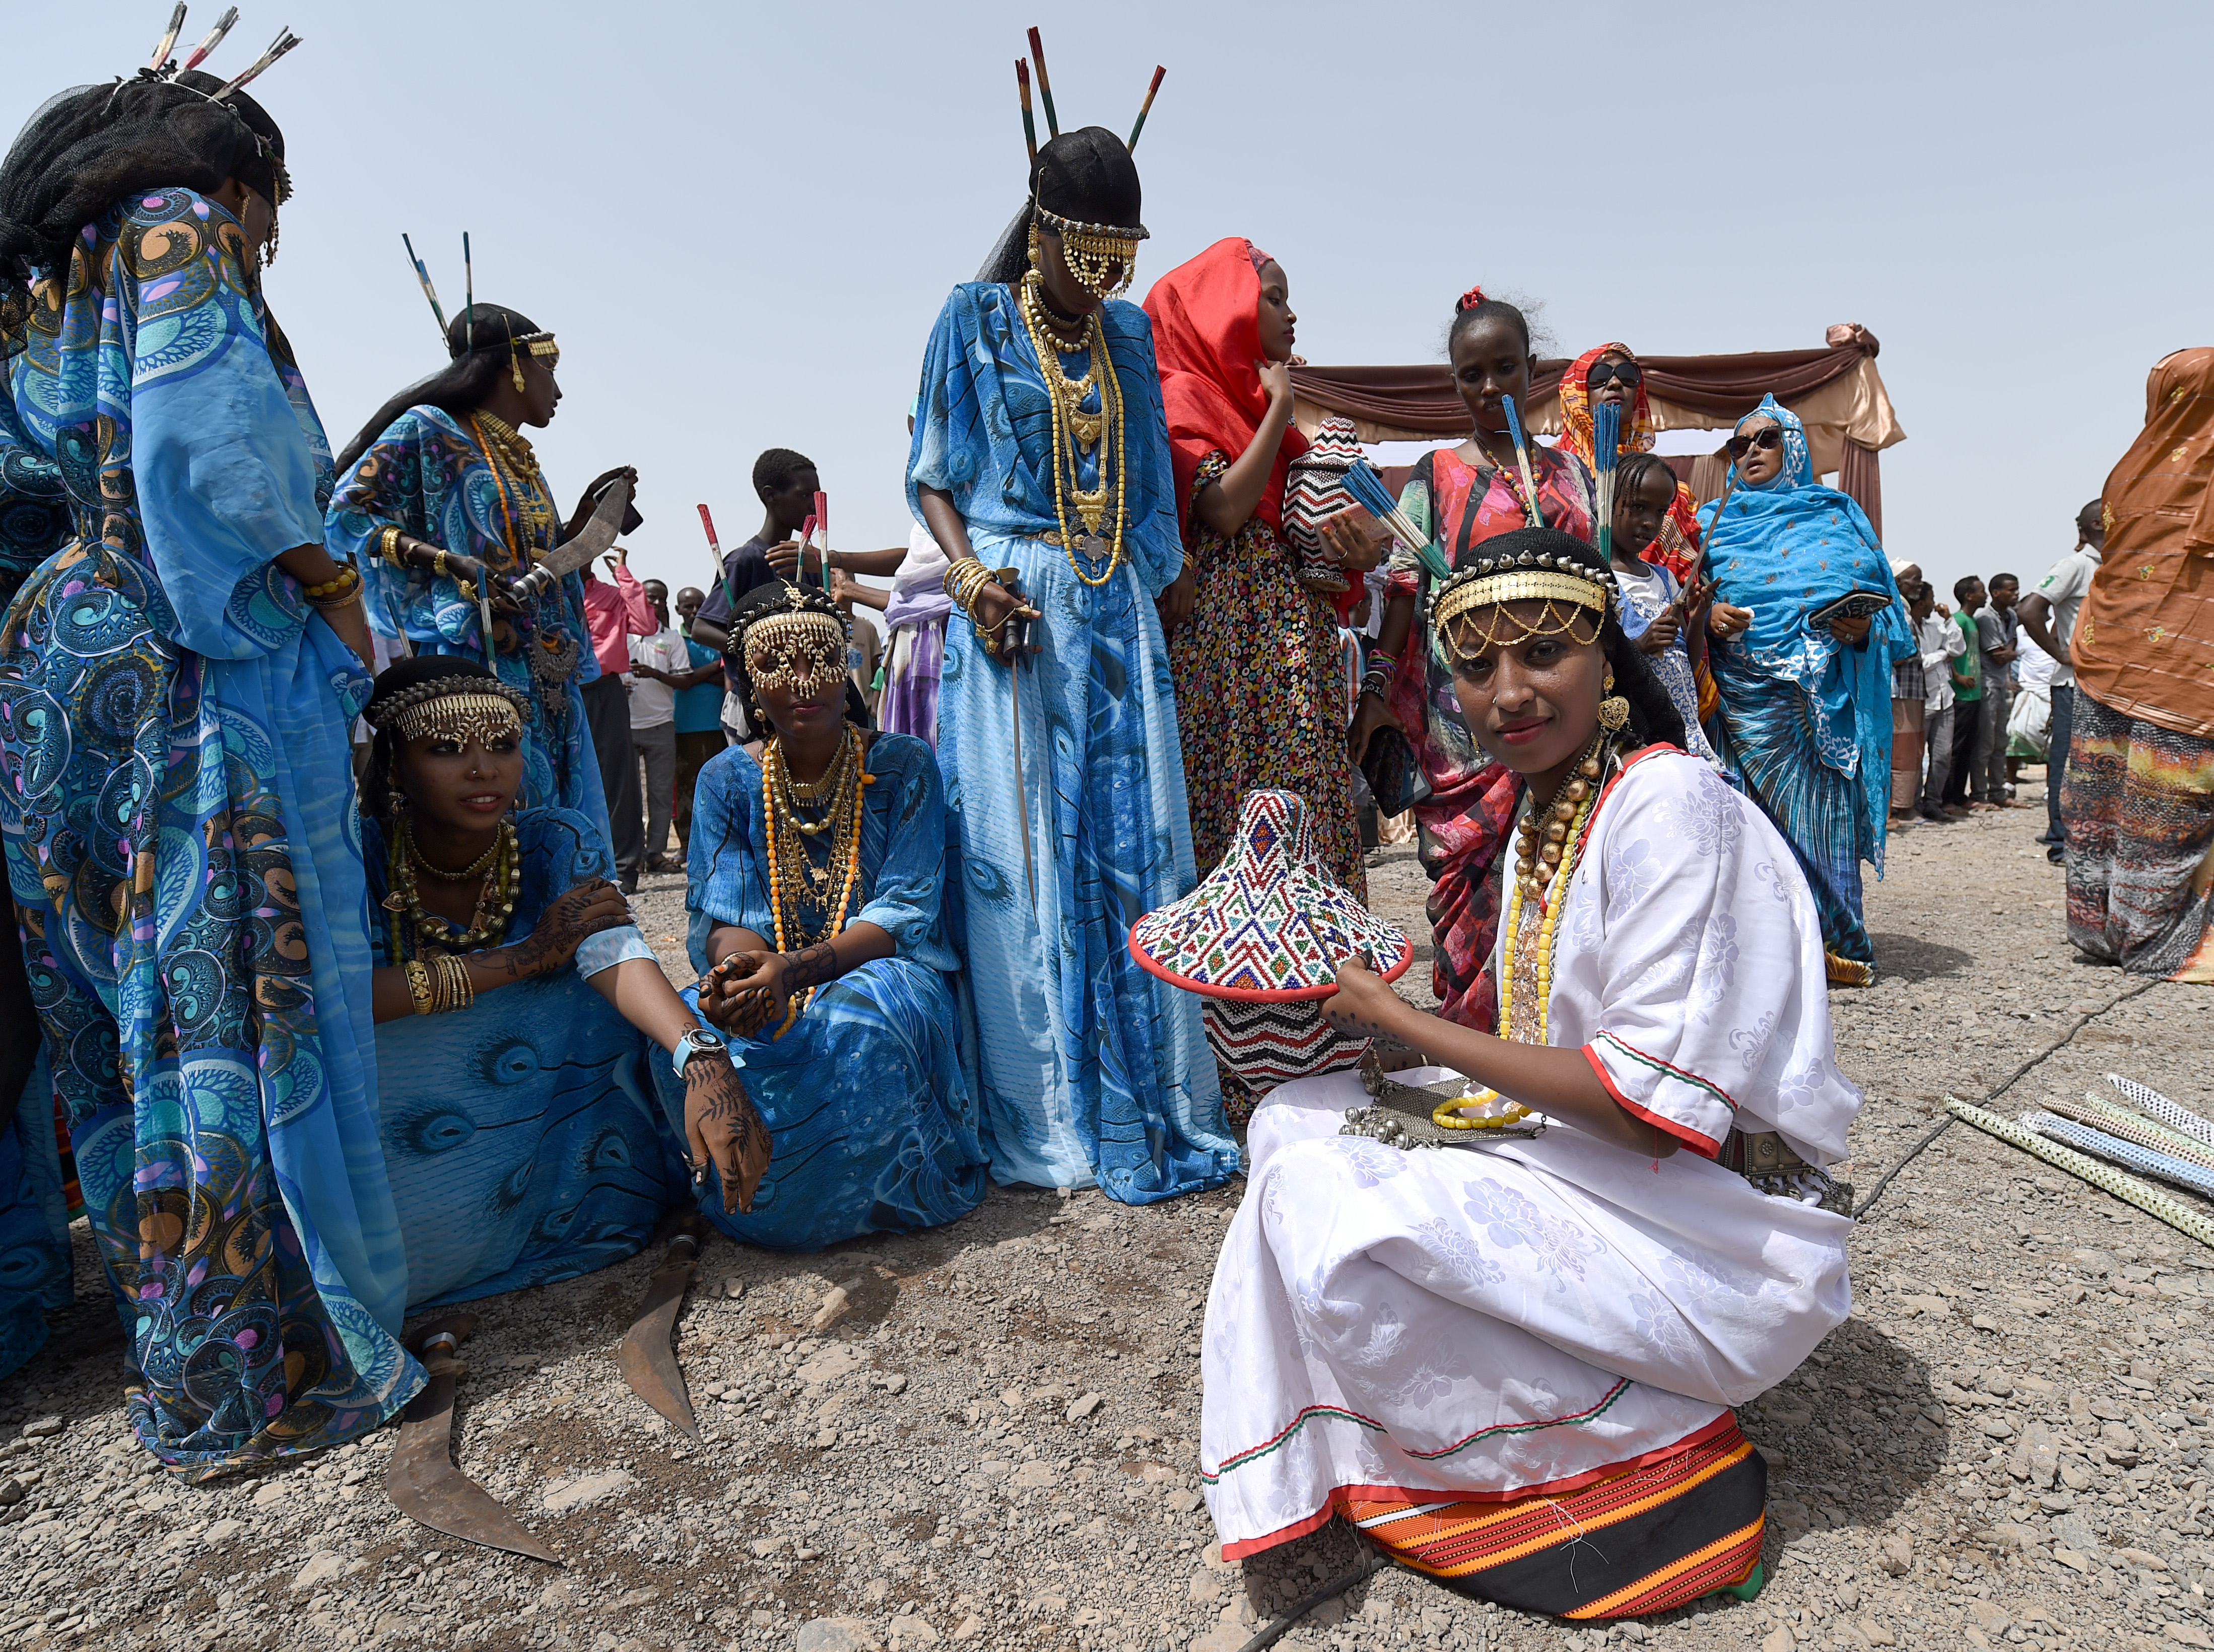 Tadjourah women rest after dancing for the 21st Sultan of Gobaad during his induction ceremony in Dikhil, Djibouti, May 22, 2015. The sultanates of Tadjourah and Gobaad are the two Afar regions in Djibouti. (U.S. Air Force photo by Senior Airman Nesha Humes)